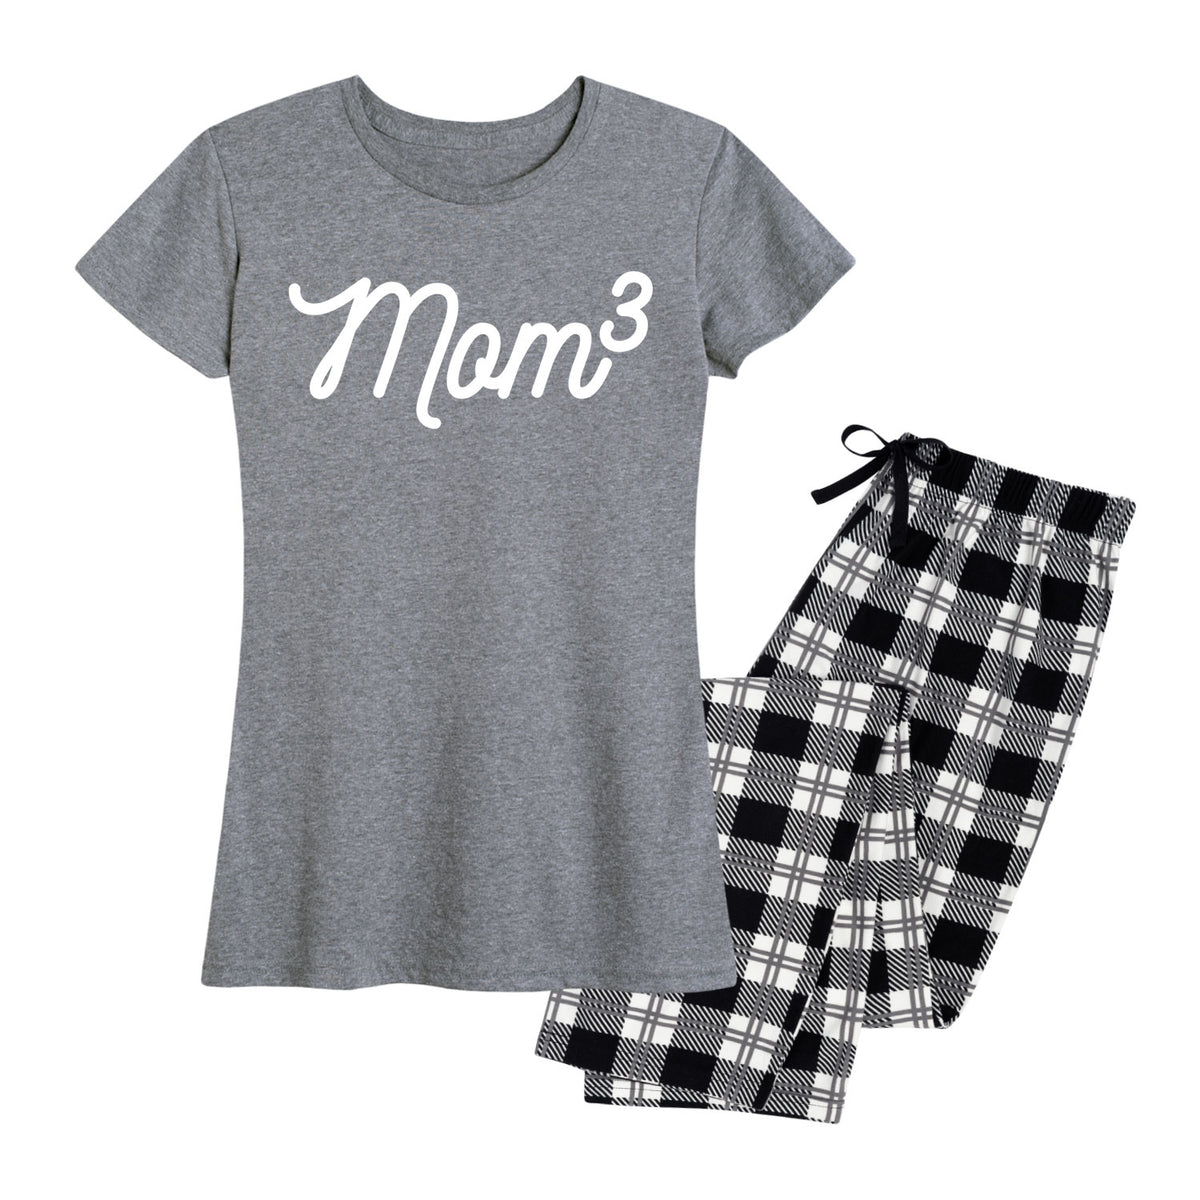 Mom to the 3rd Power - Women's Pajama Set